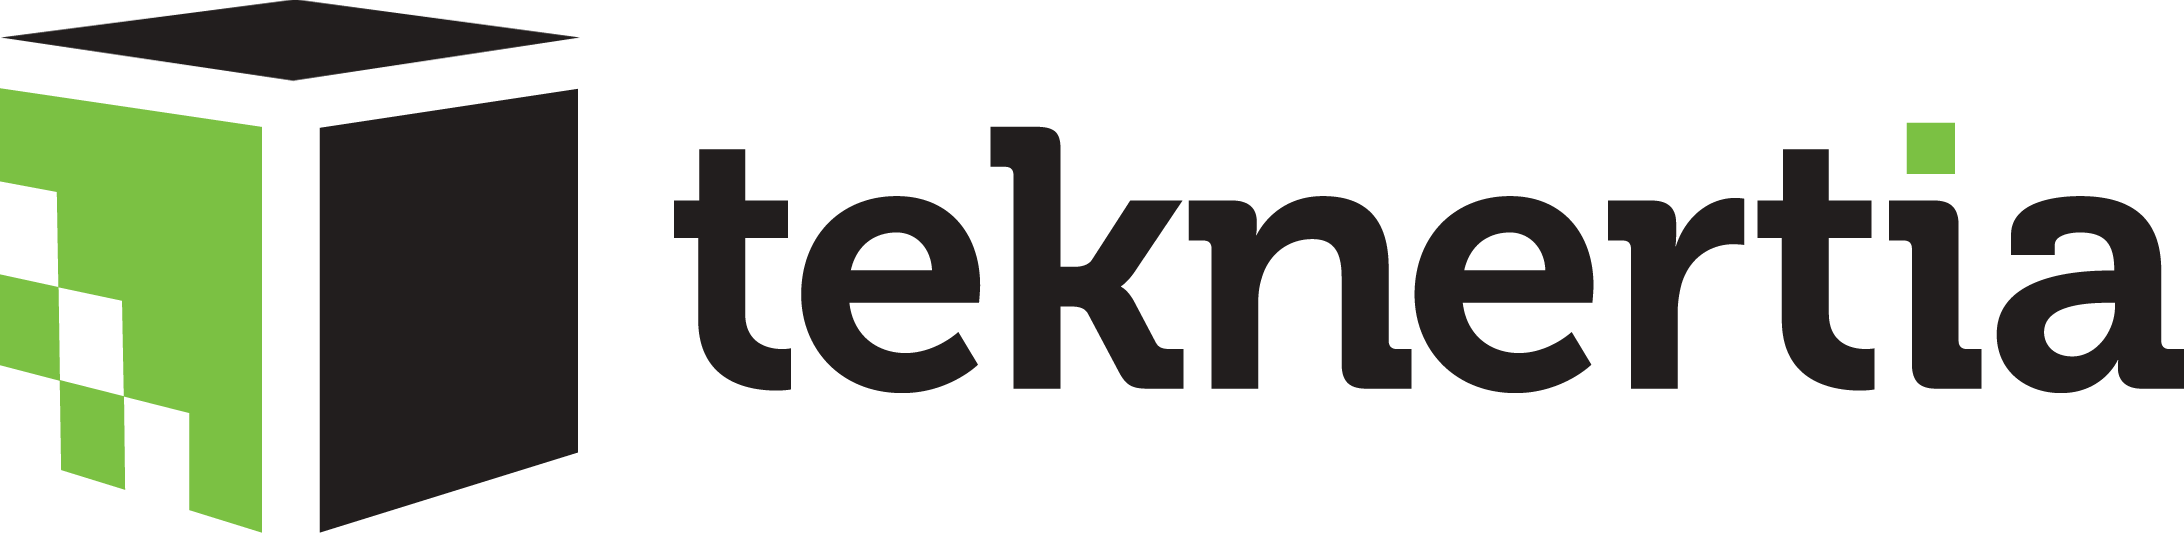 Cloud and Hybrid Managed IT Services | Microsoft Gold Partner - Teknertia